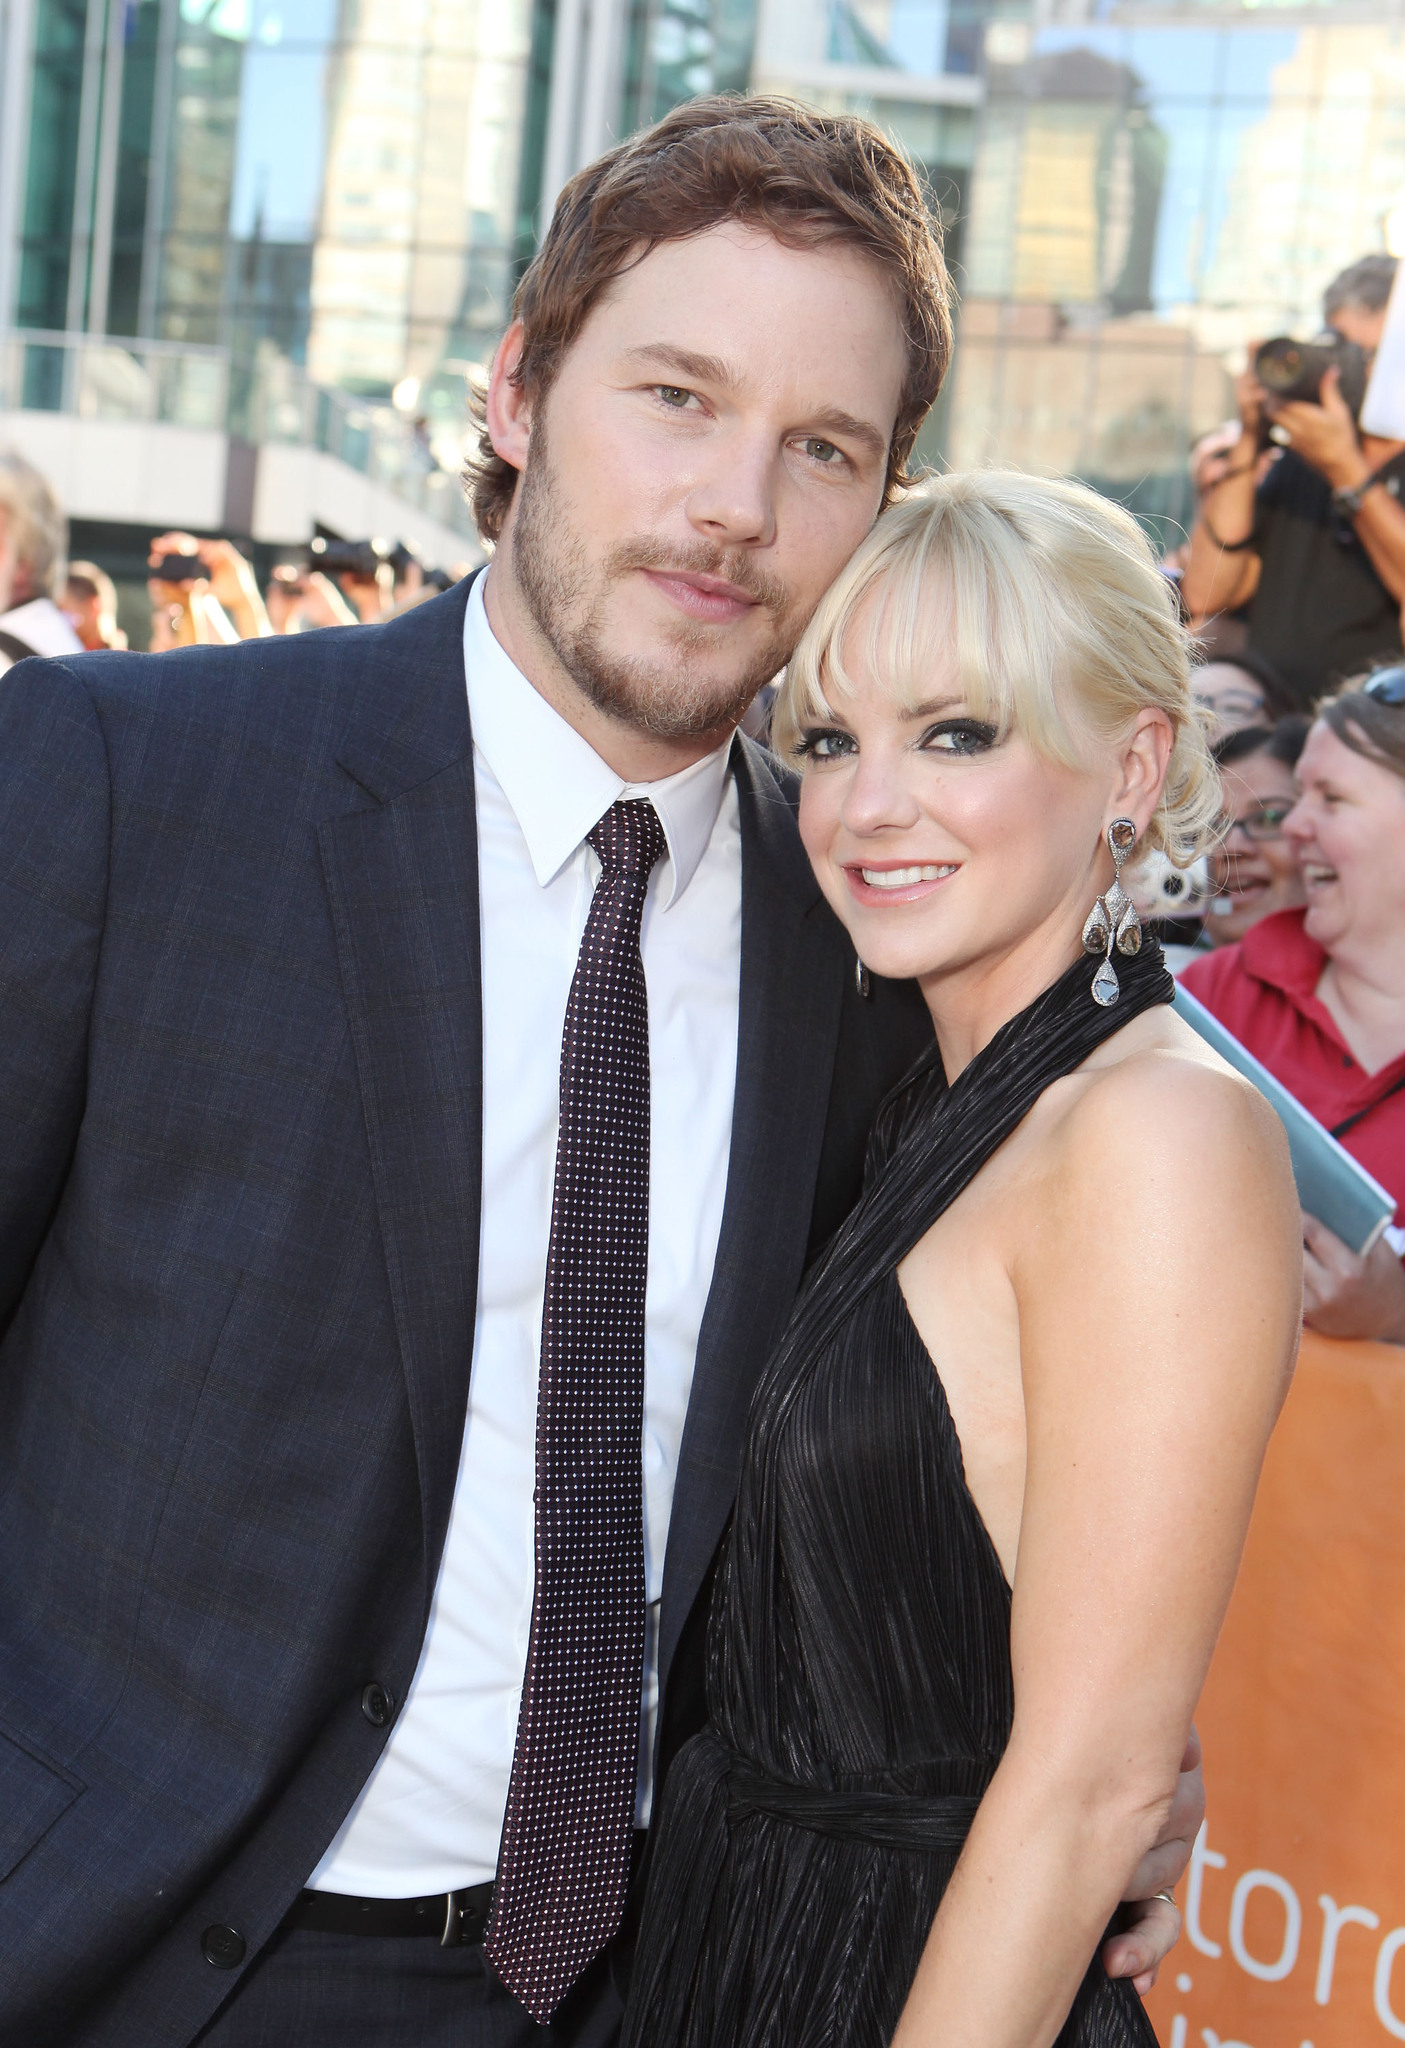 Anna Faris and Chris Pratt at event of Moneyball (2011) photo #489211